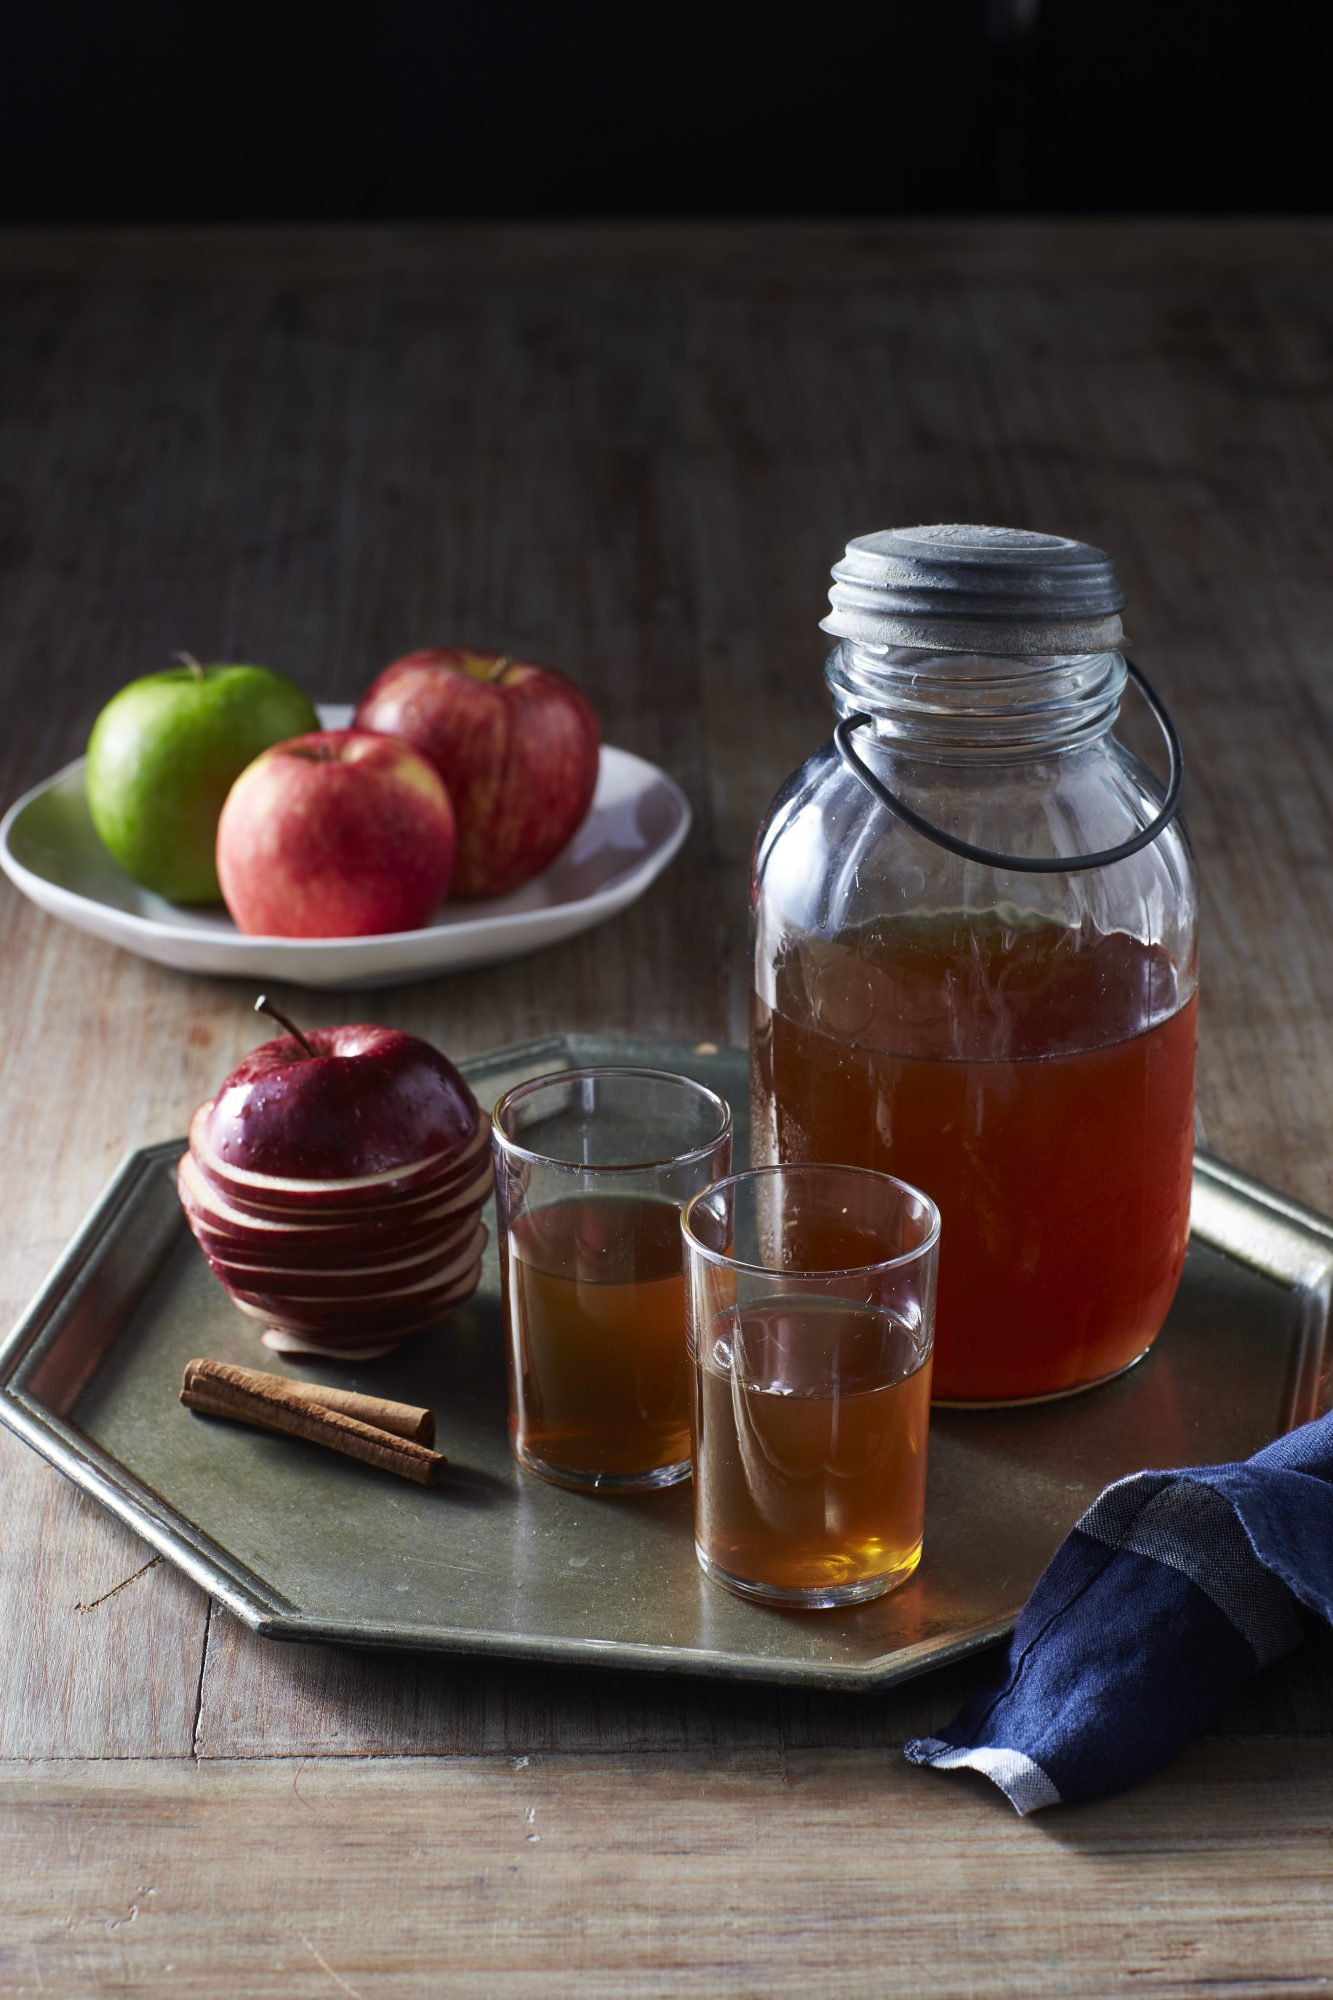 Photo: Alison Miksch; Food Styling: Cat Steele; Prop Styling: Lindsey Lower